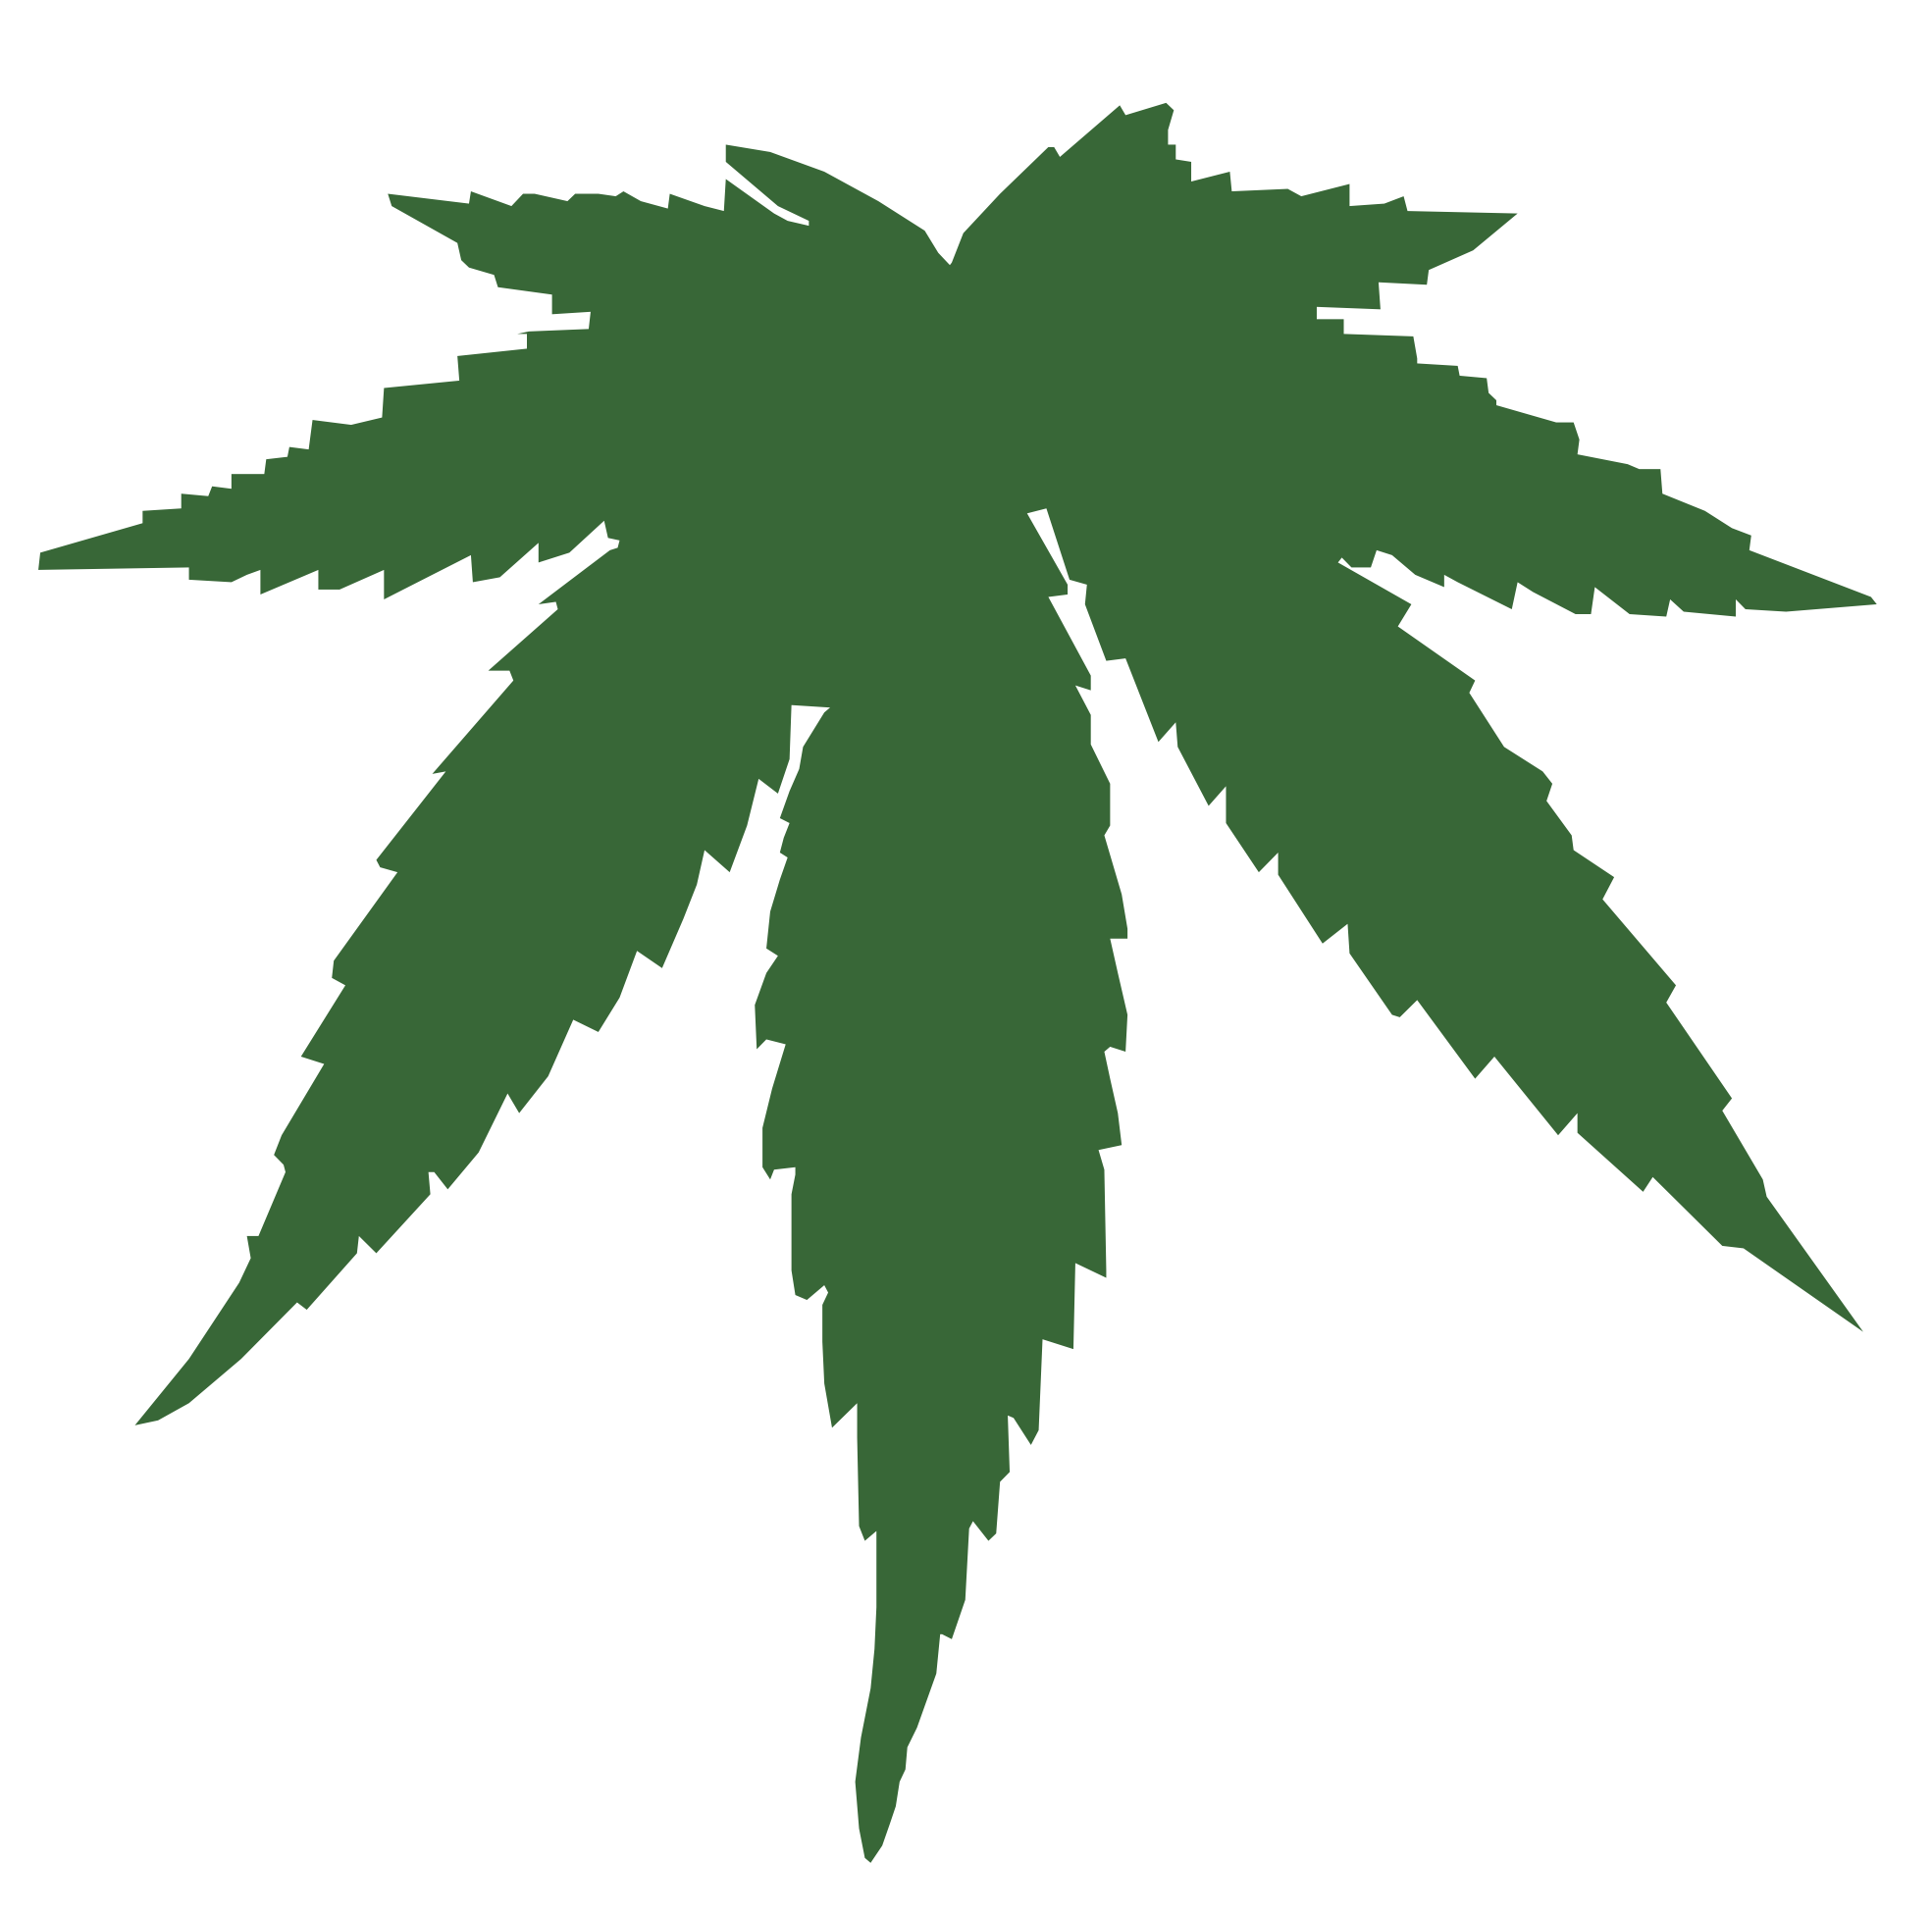 Weed blunt transparent clip. Weeds clipart graphic black and white stock